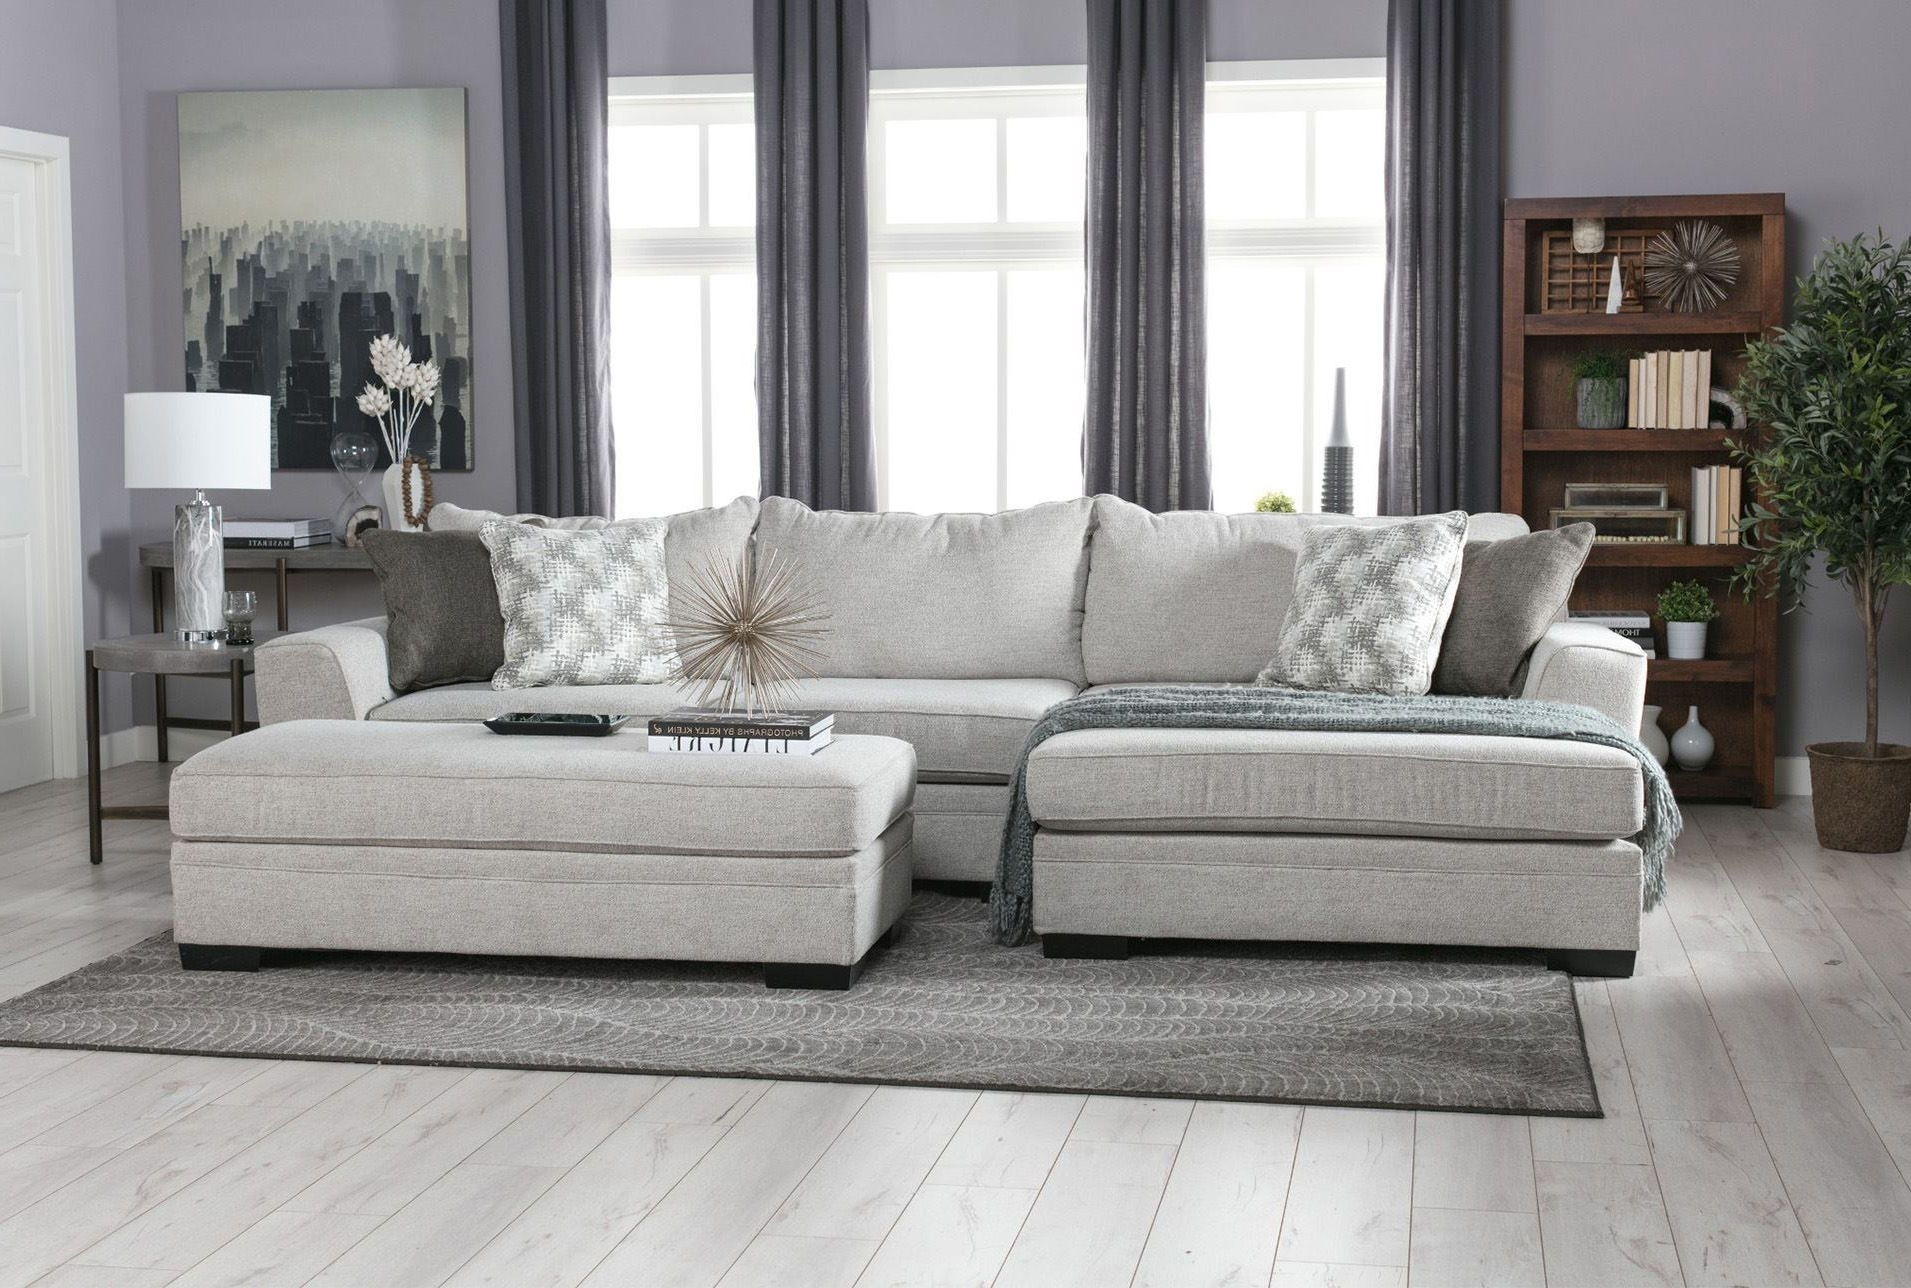 Delano 2 Piece Sectional W/raf Oversized Chaise | Living Room Ideas inside Delano 2 Piece Sectionals With Raf Oversized Chaise (Image 15 of 30)